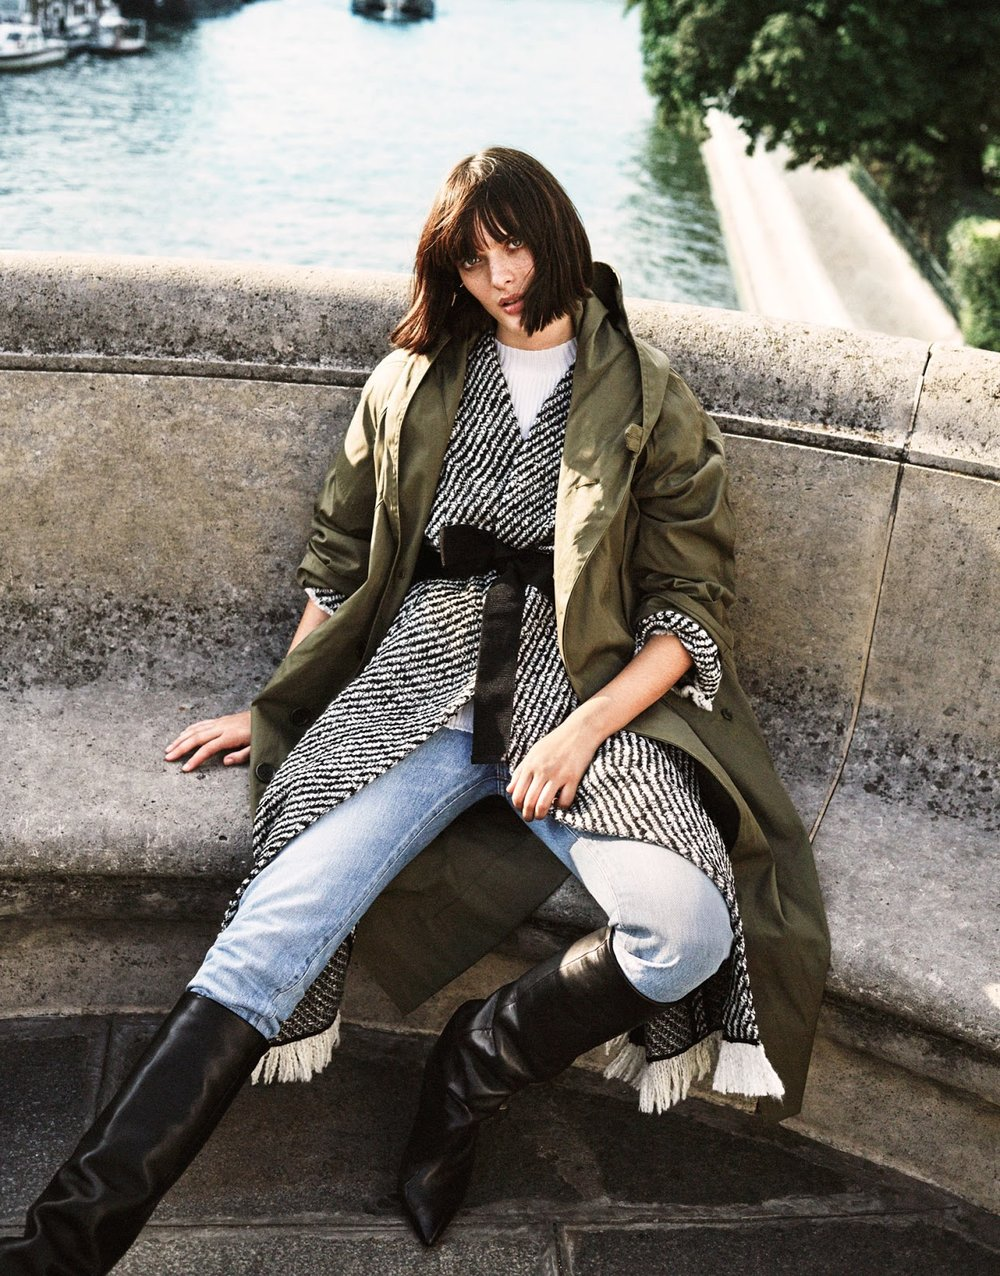 SAM-ROLLINSON-BY-QUENTIN-DE-BRIEY-FOR-THE-EDIT-OCTOBER-2016-3.jpg